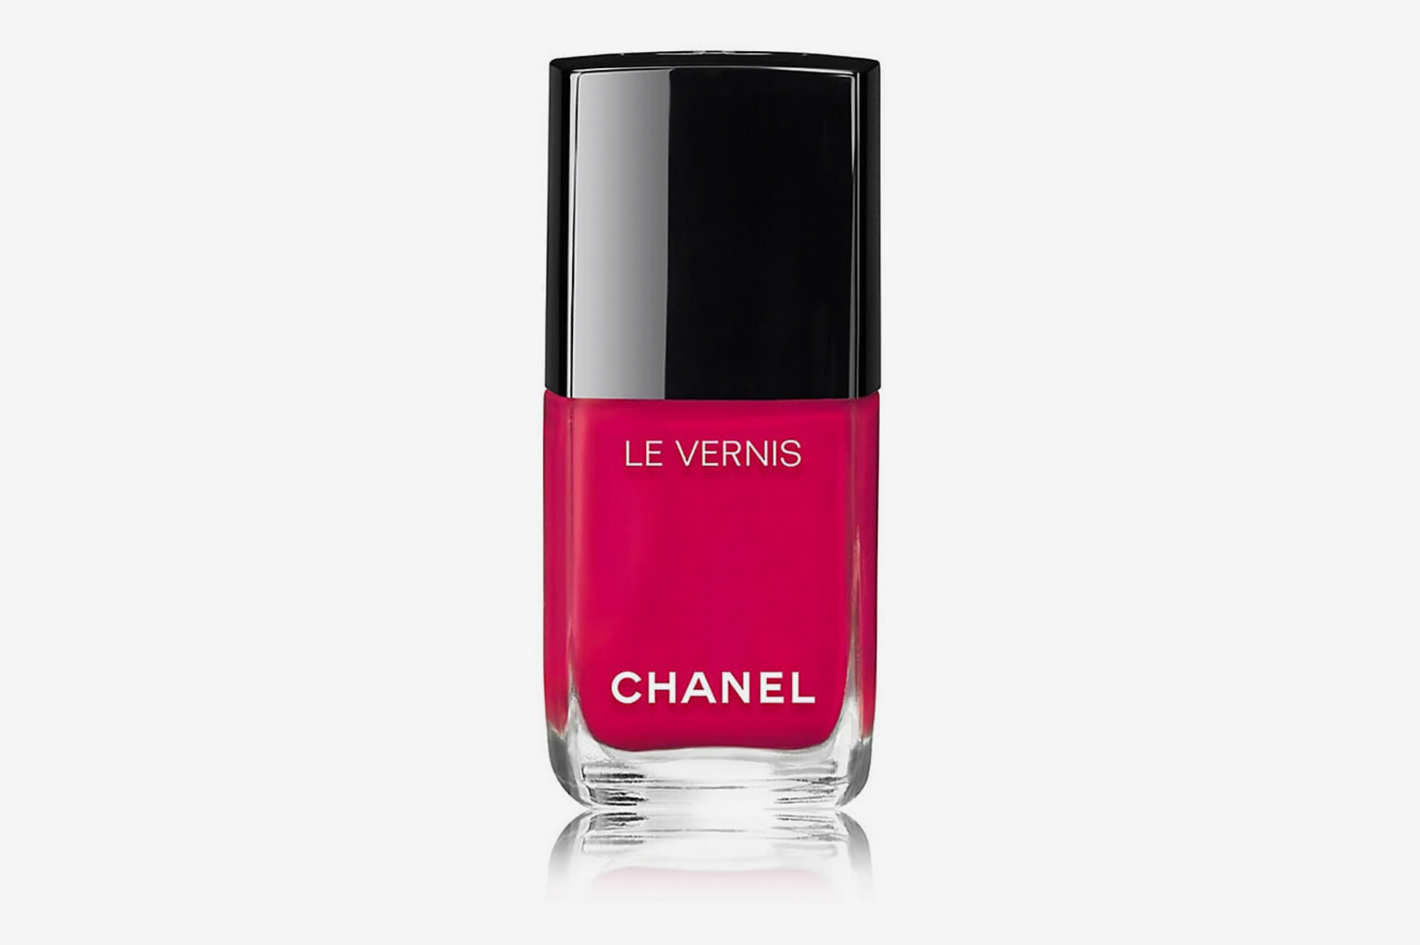 Chanel Le Vernis in Camelia